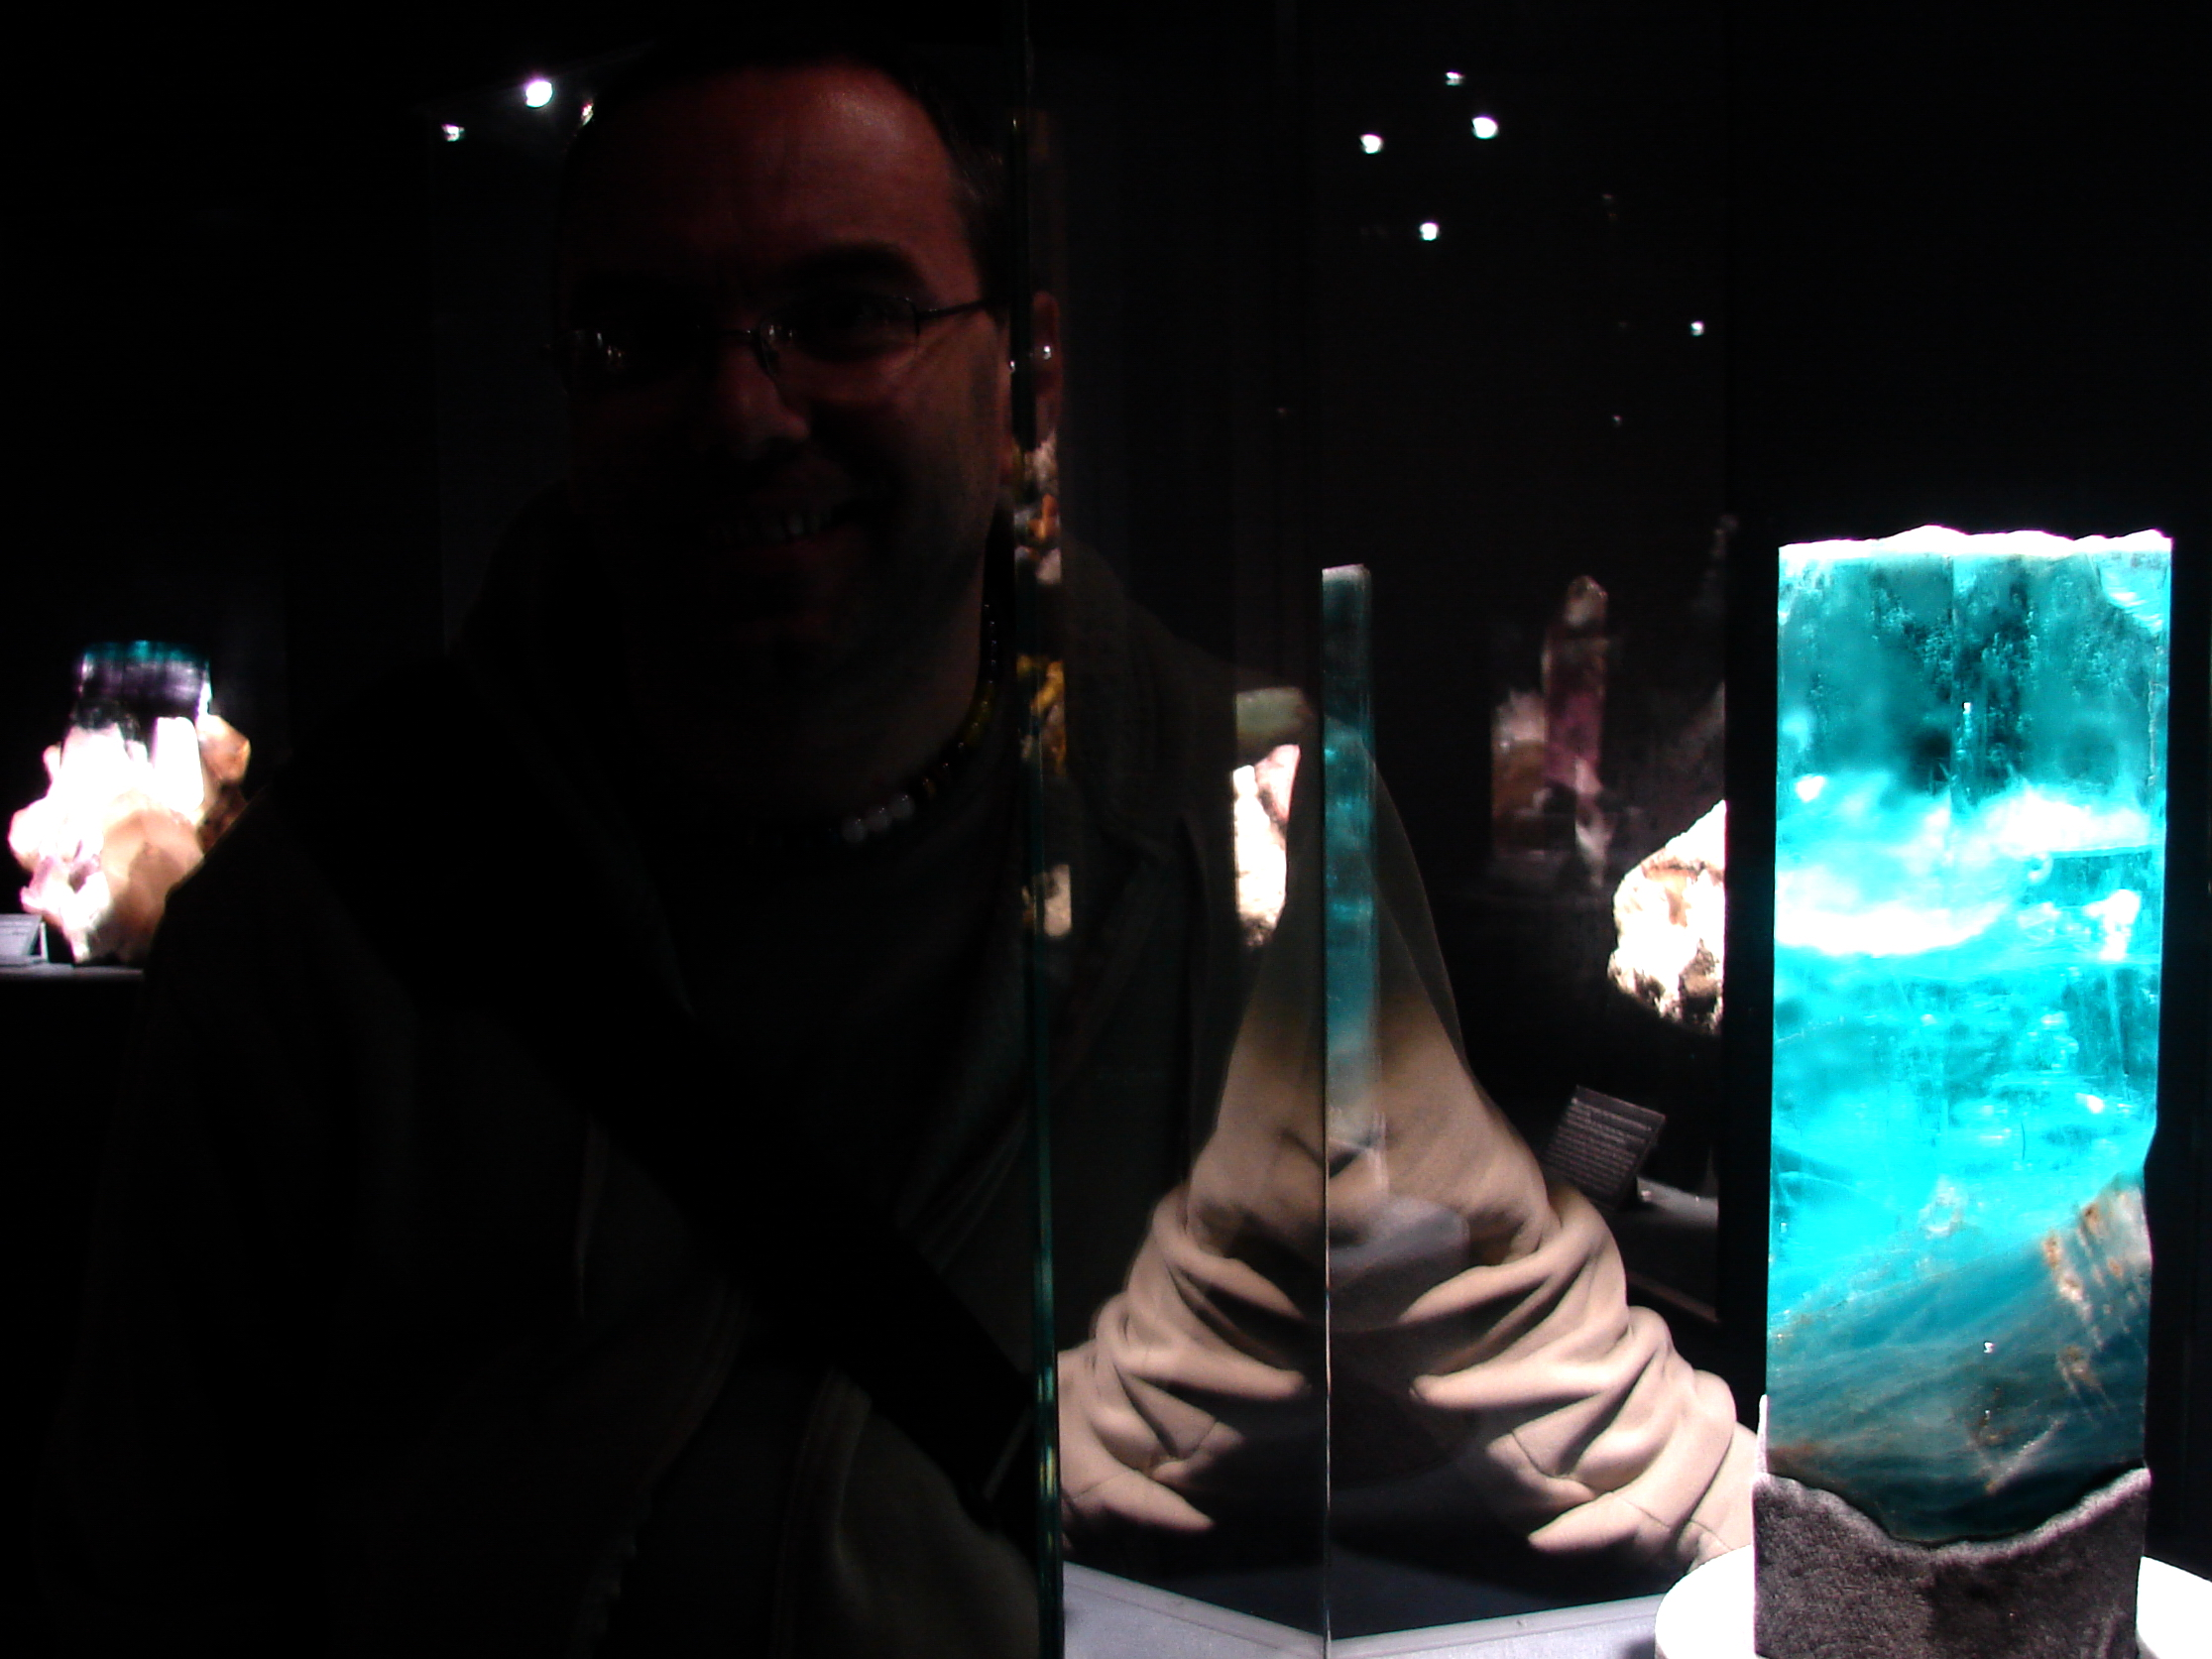 On the amazing Adalberto Giazotto gem and mineral exhibition - Firenze 2012.april.